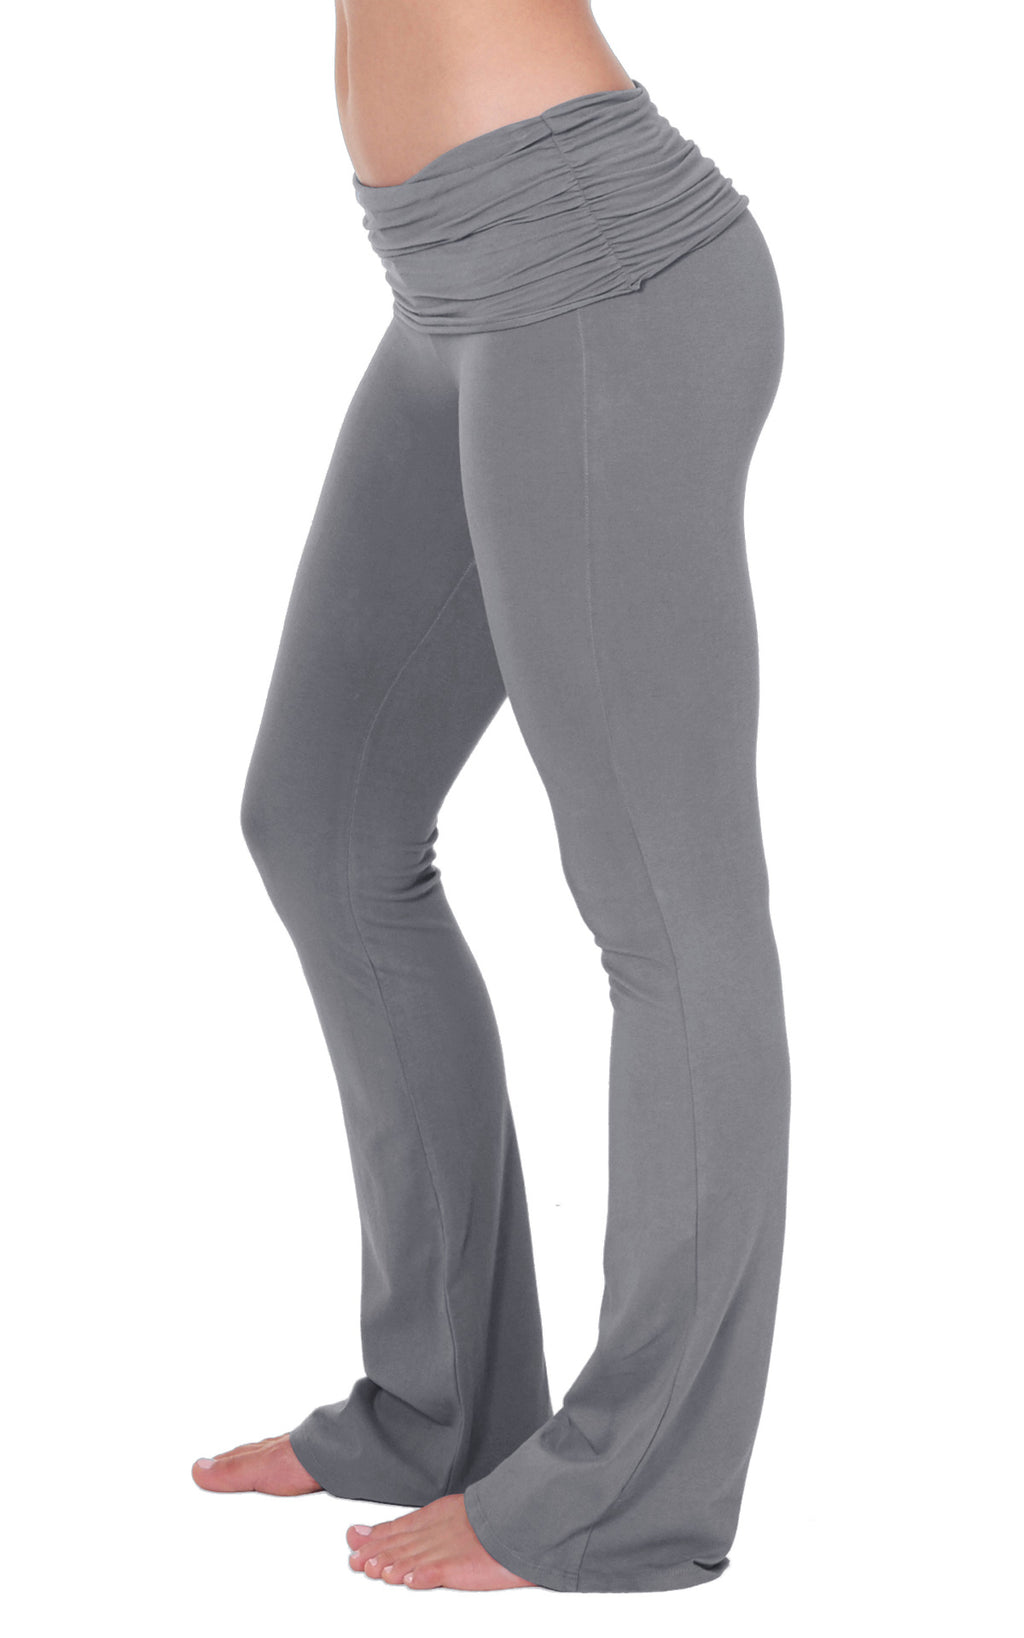 Sterling Grey Organic cotton lycra ruched waist bootleg flare yoga activewear pant